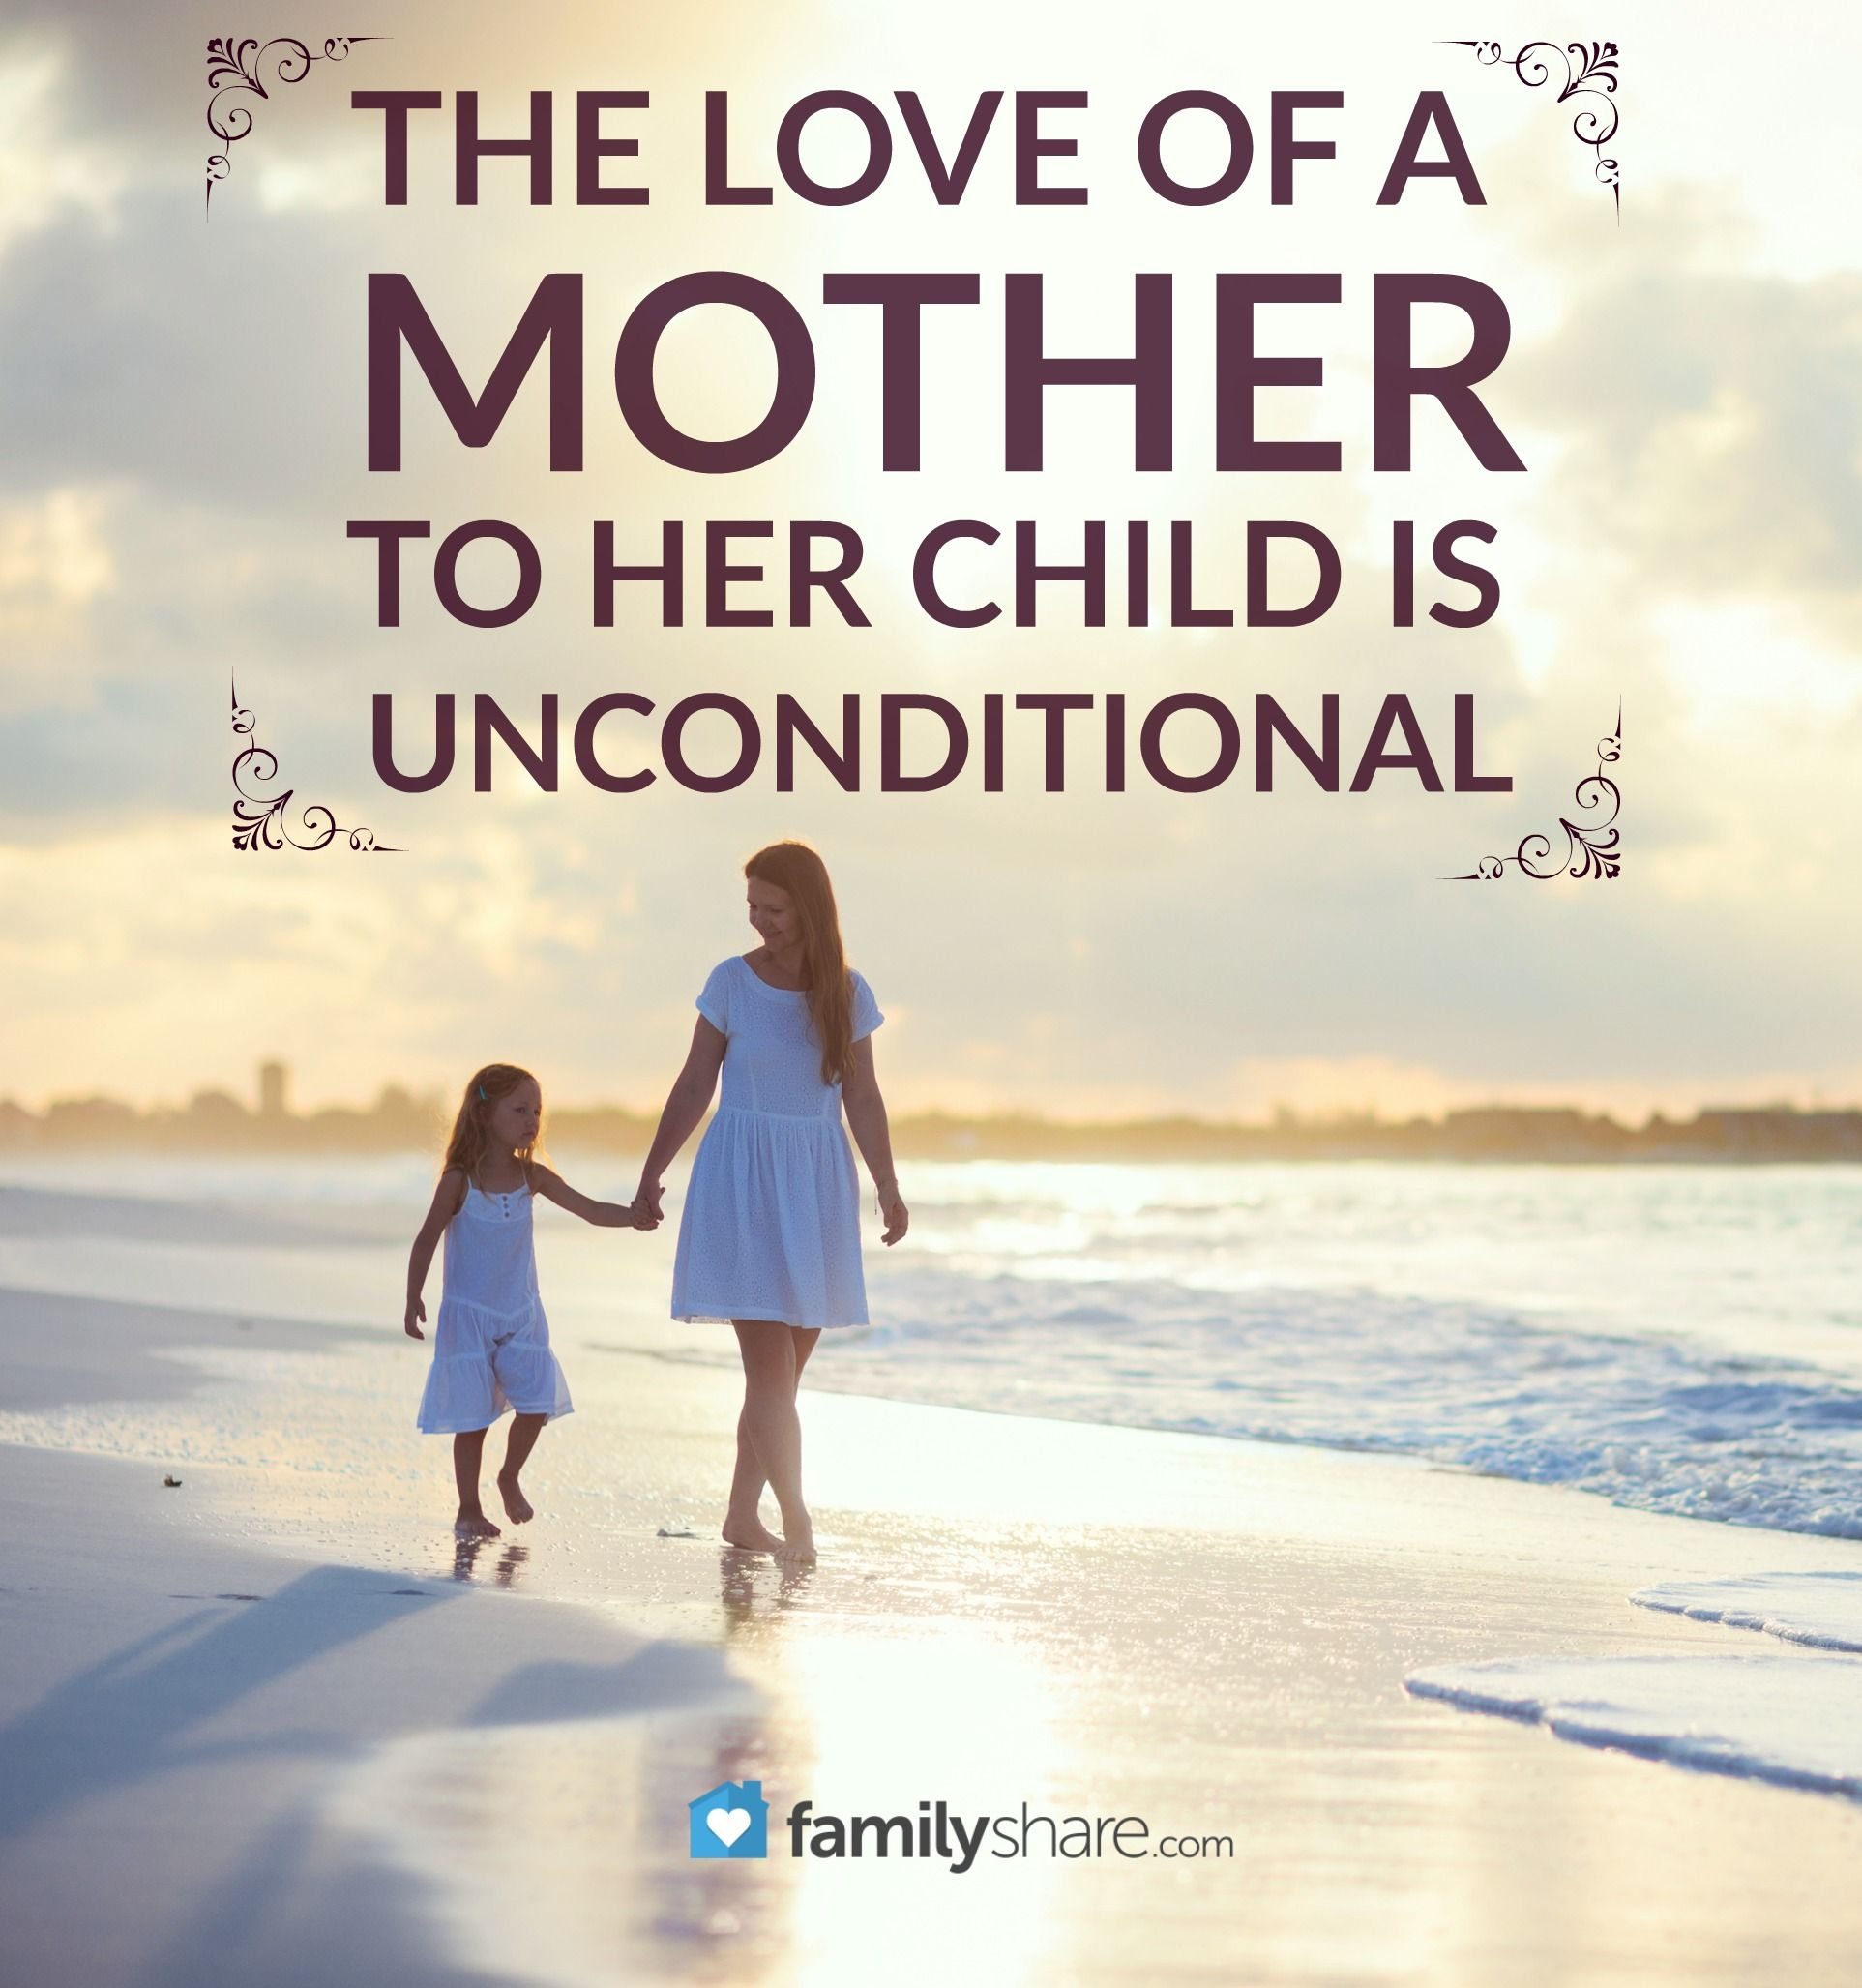 The love of a mother to her child is unconditional